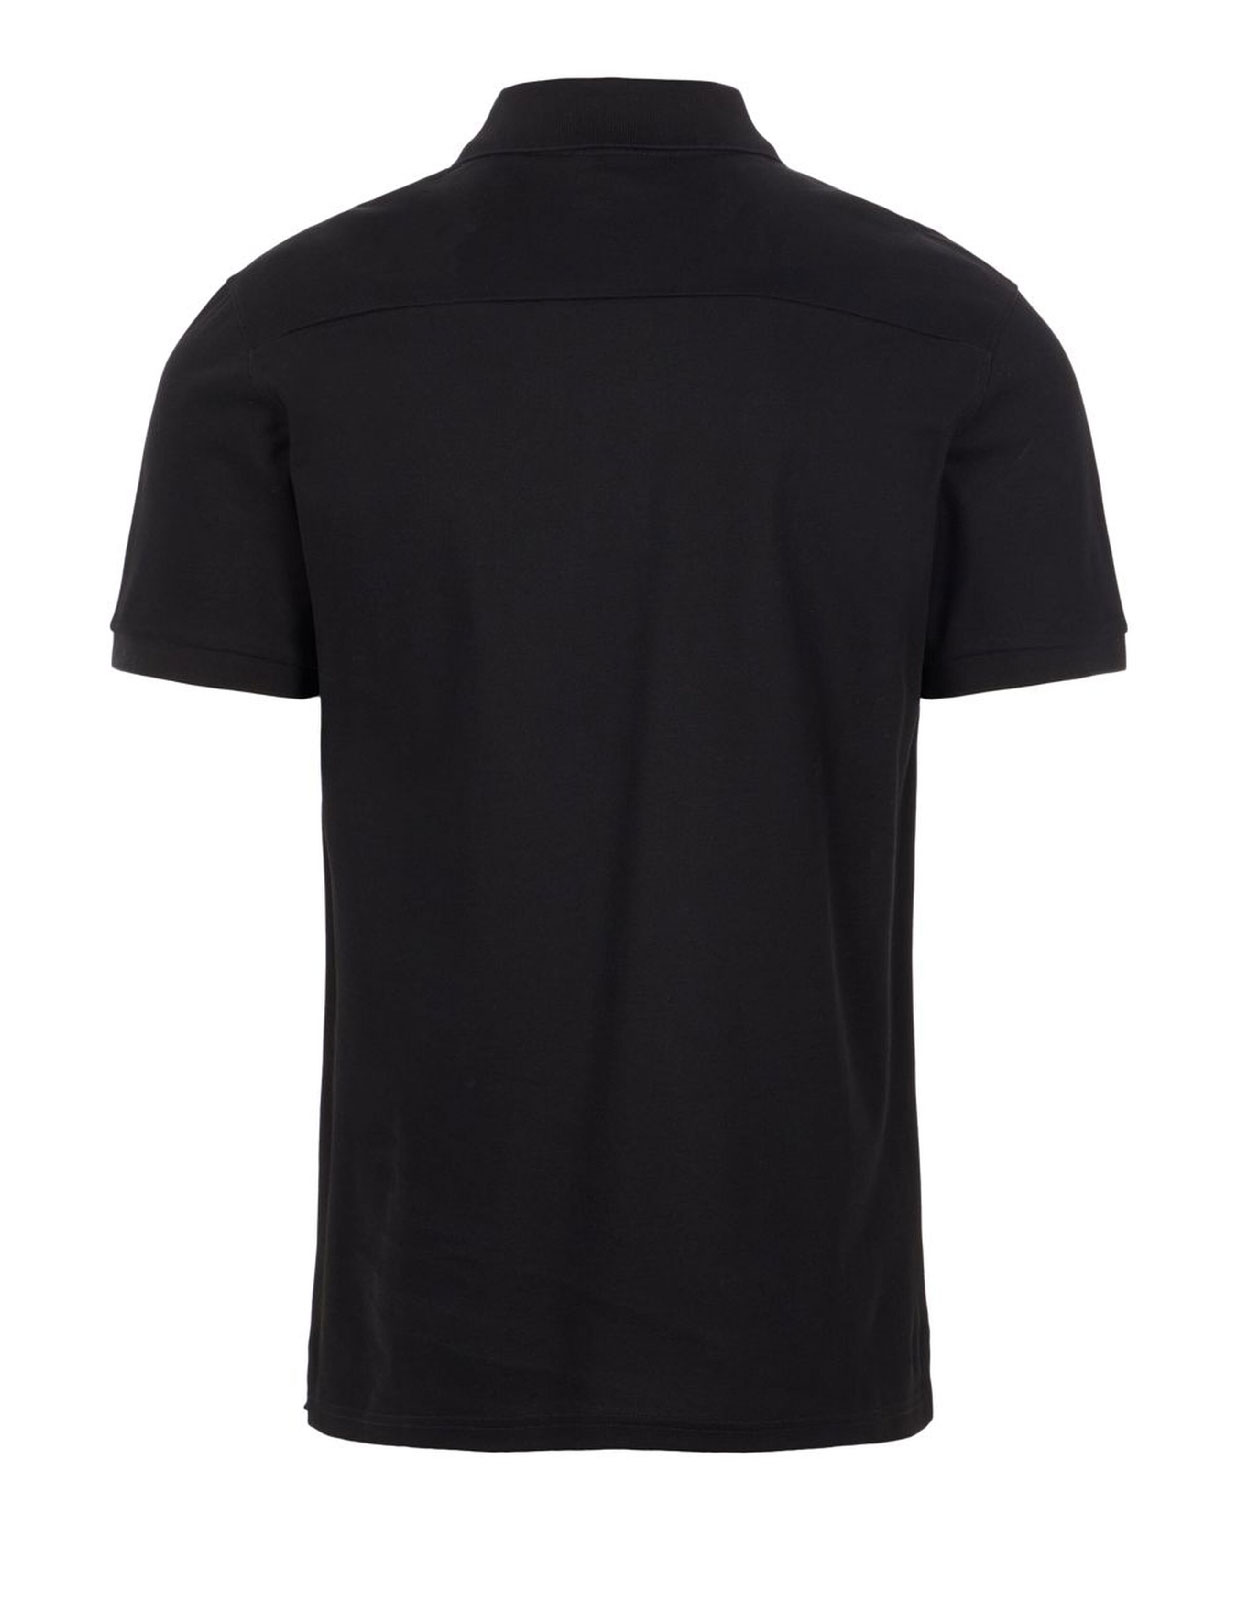 Troy Cotton Polo Pique Shirt Black